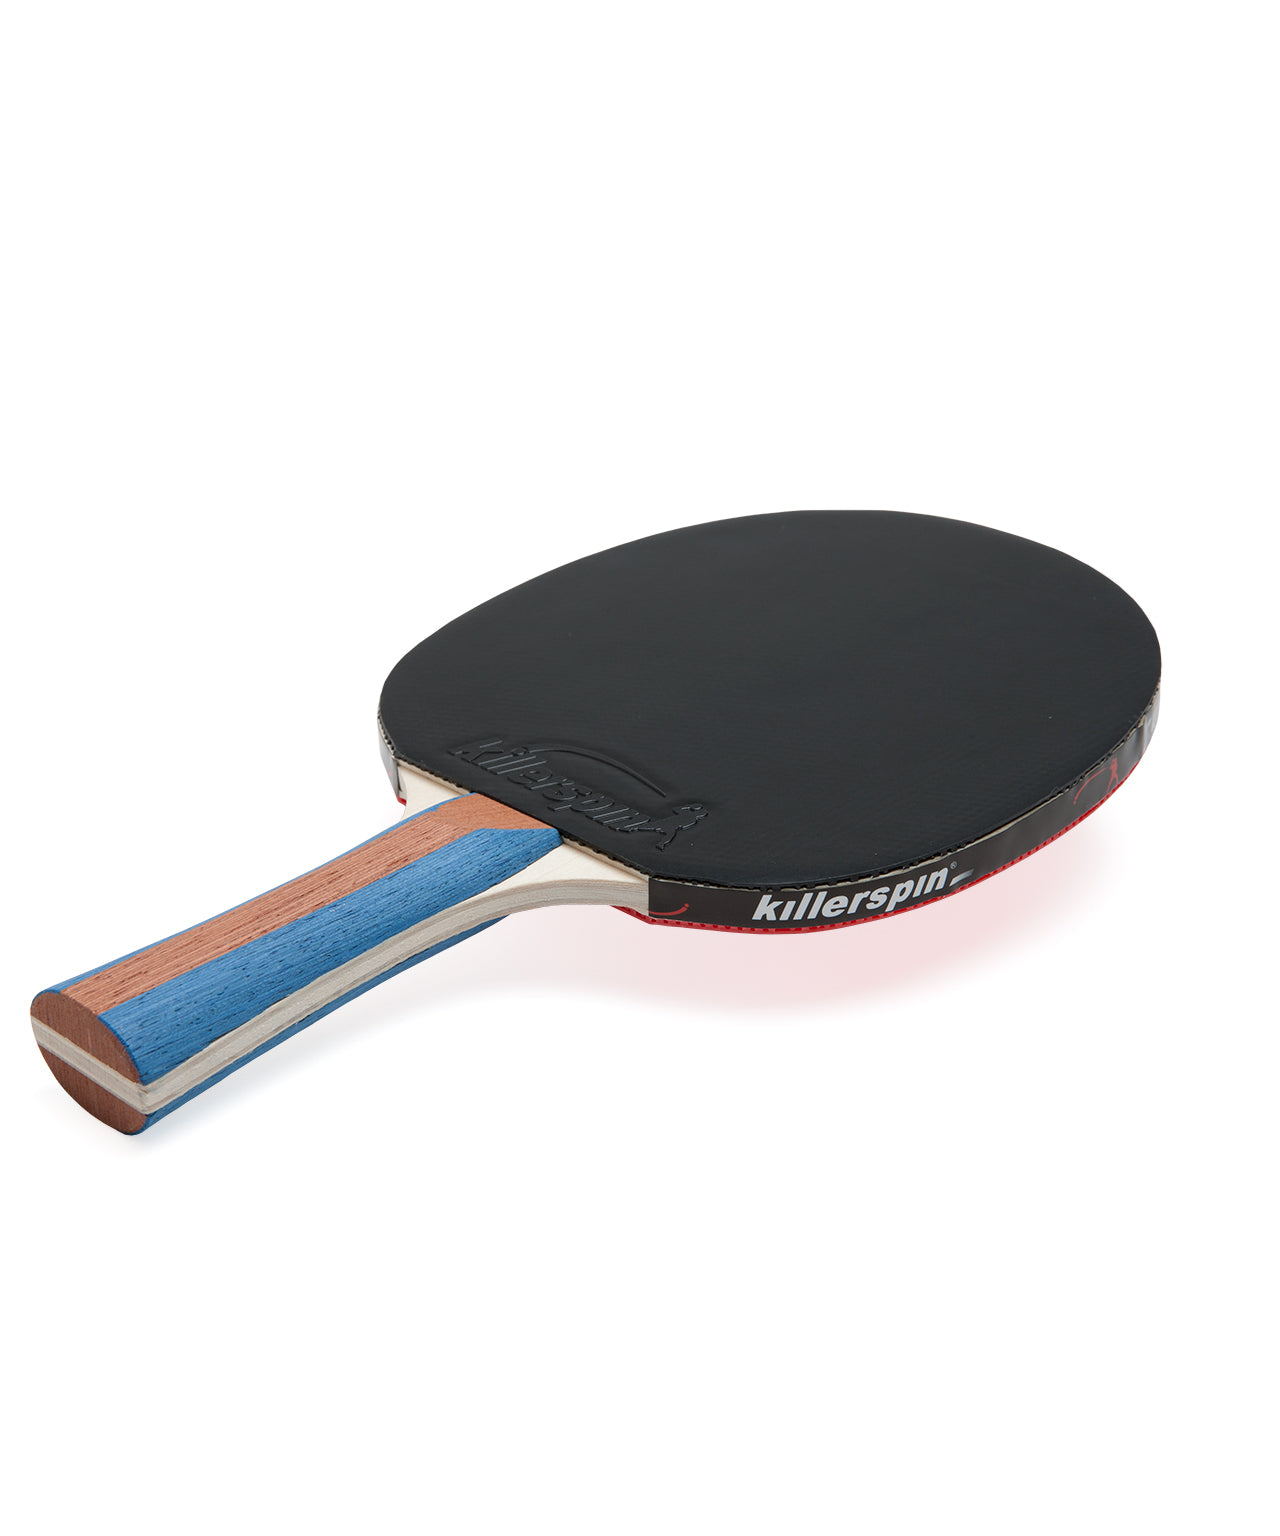 Killerspin Ping Pong Paddle Set JetSet4 Premium - Black Rubber